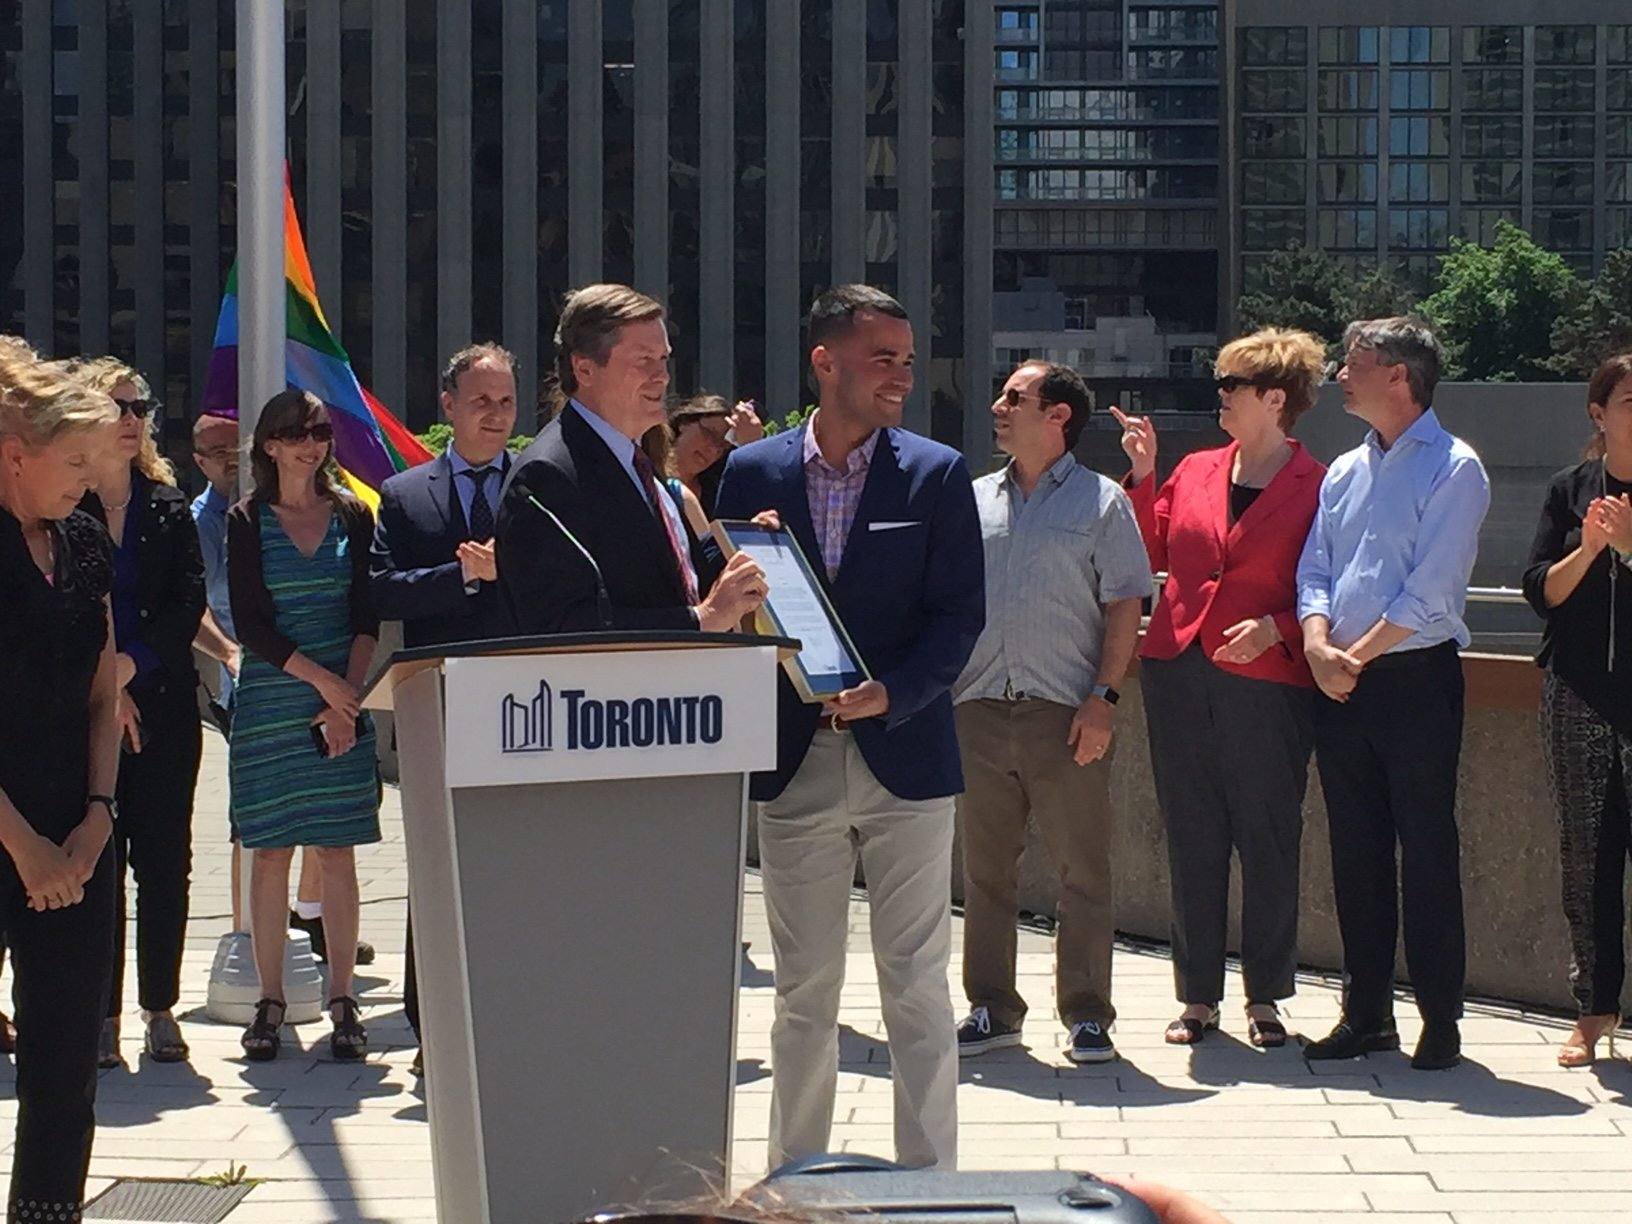 Pride Toronto's Aaron GlynWilliams and Mayor John Tory pose with the City's proclamation of Pride Month.